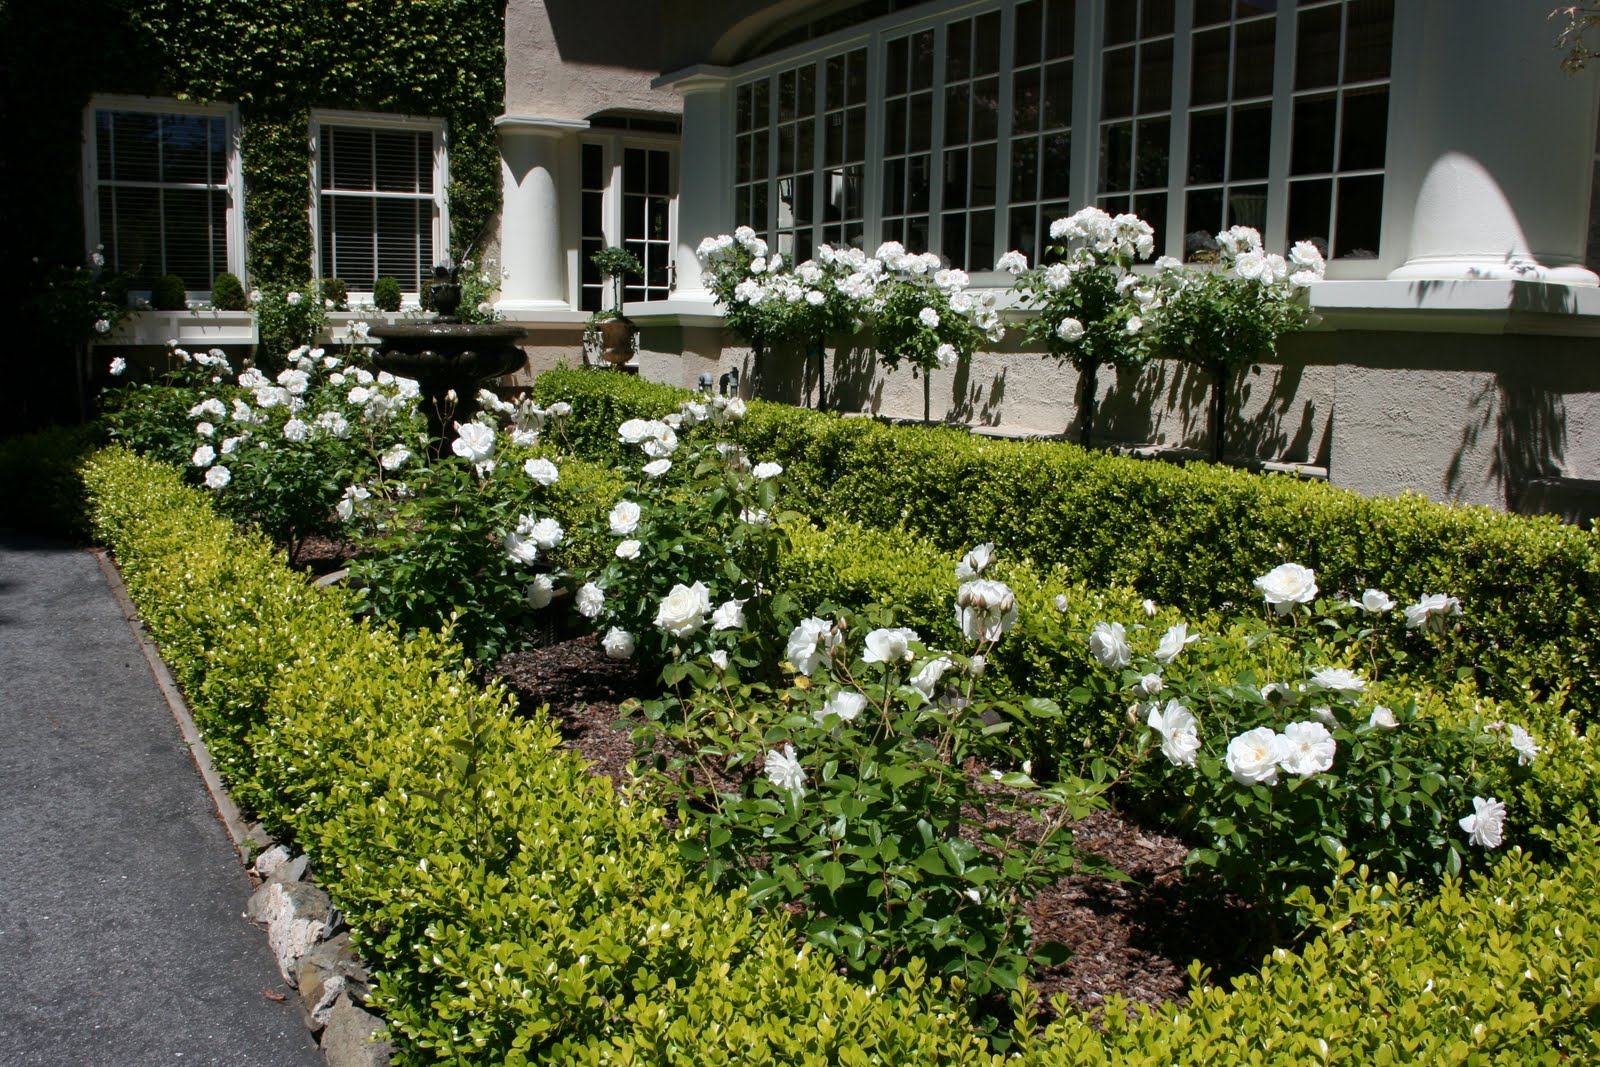 Landscaping With Boxwoods And Roses : Vignette design garden vignettes